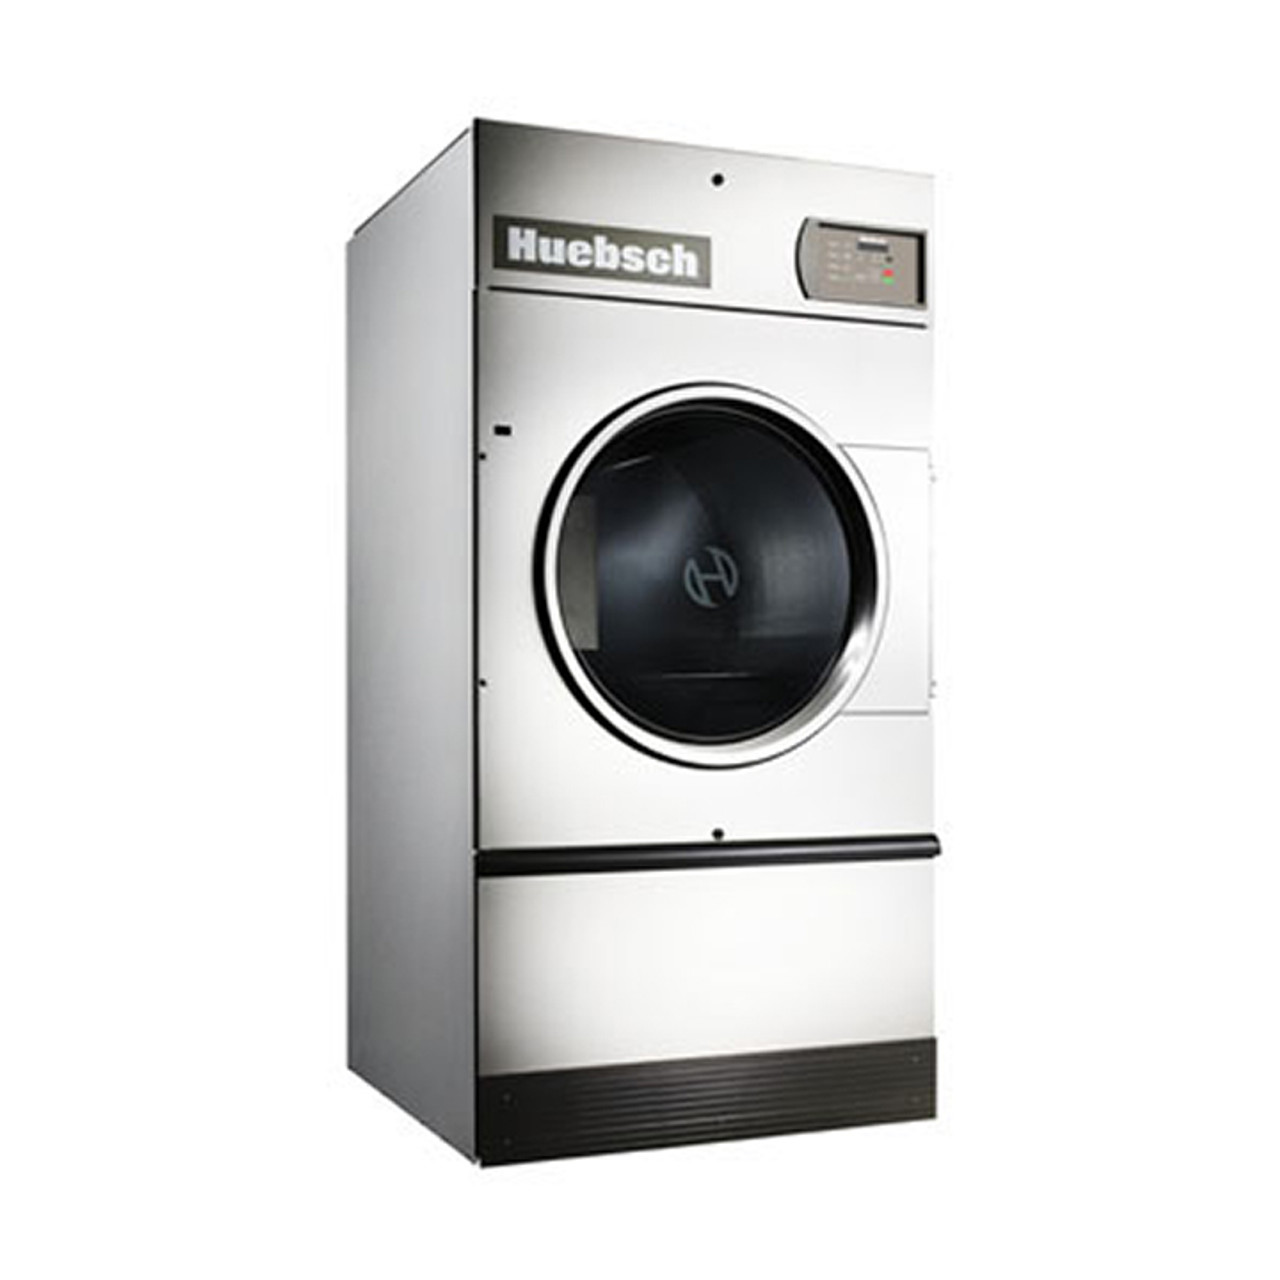 Huebsch Commercial OPL Tumble Dryers